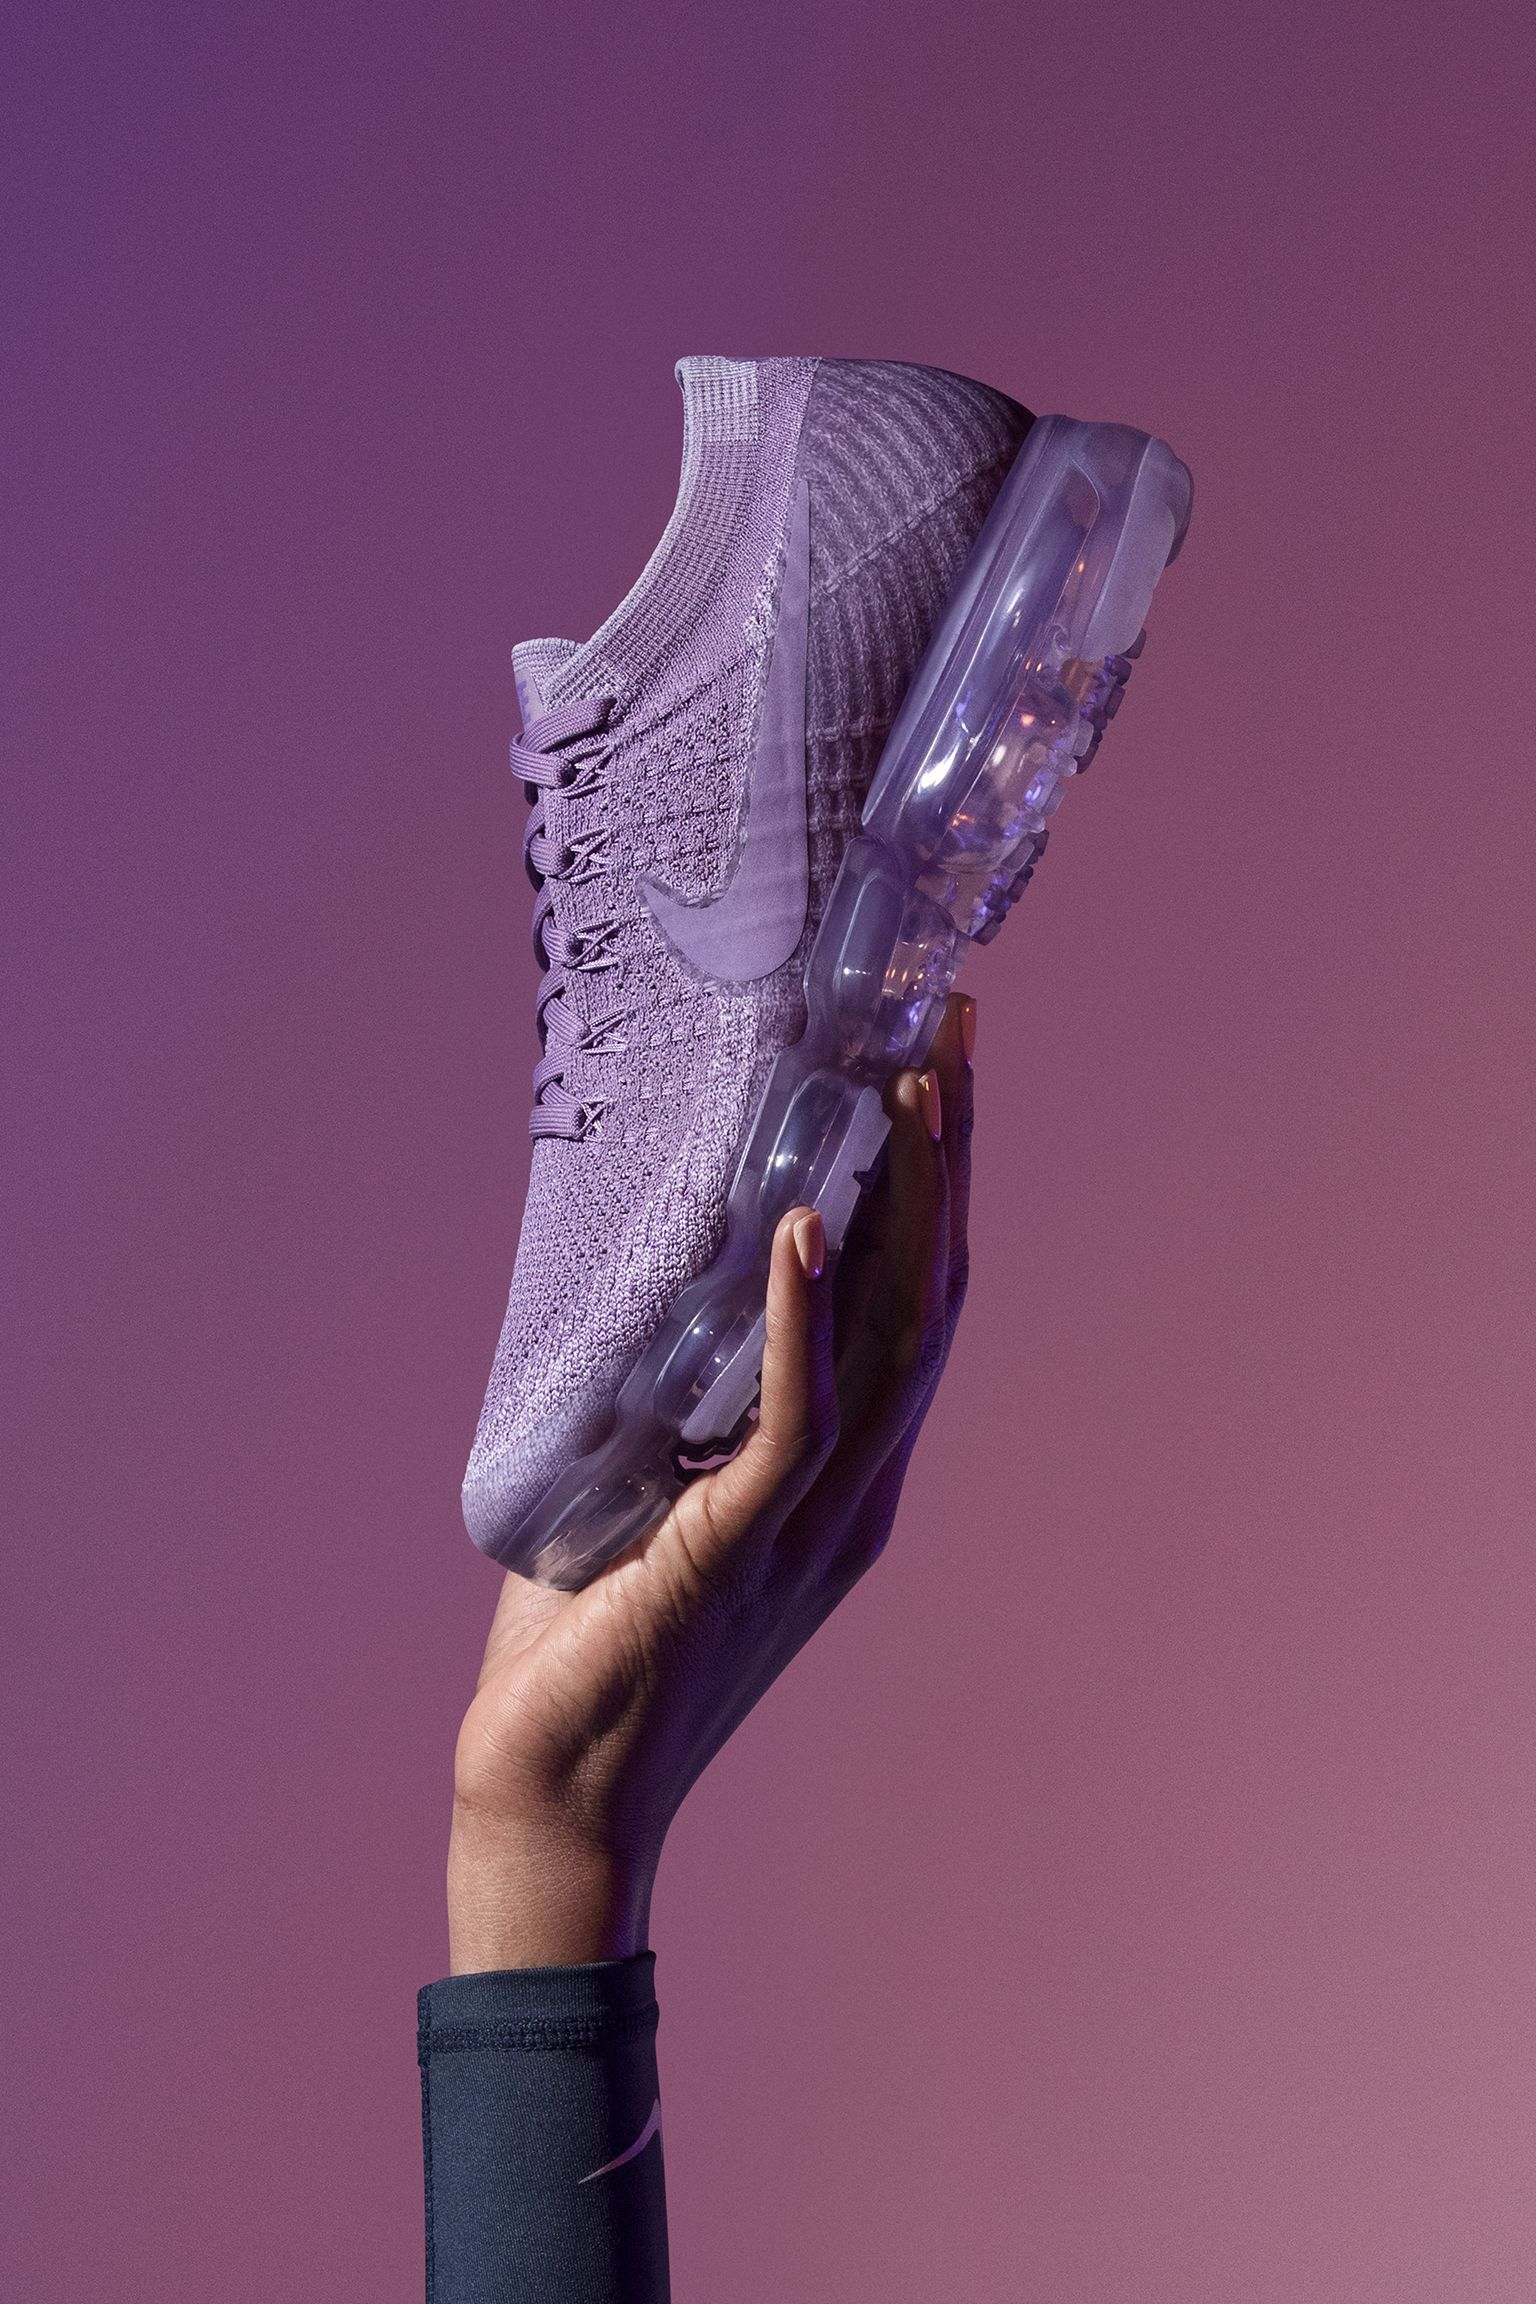 Women's Nike Air Vapormax Flyknit 'Day to Night' Collection